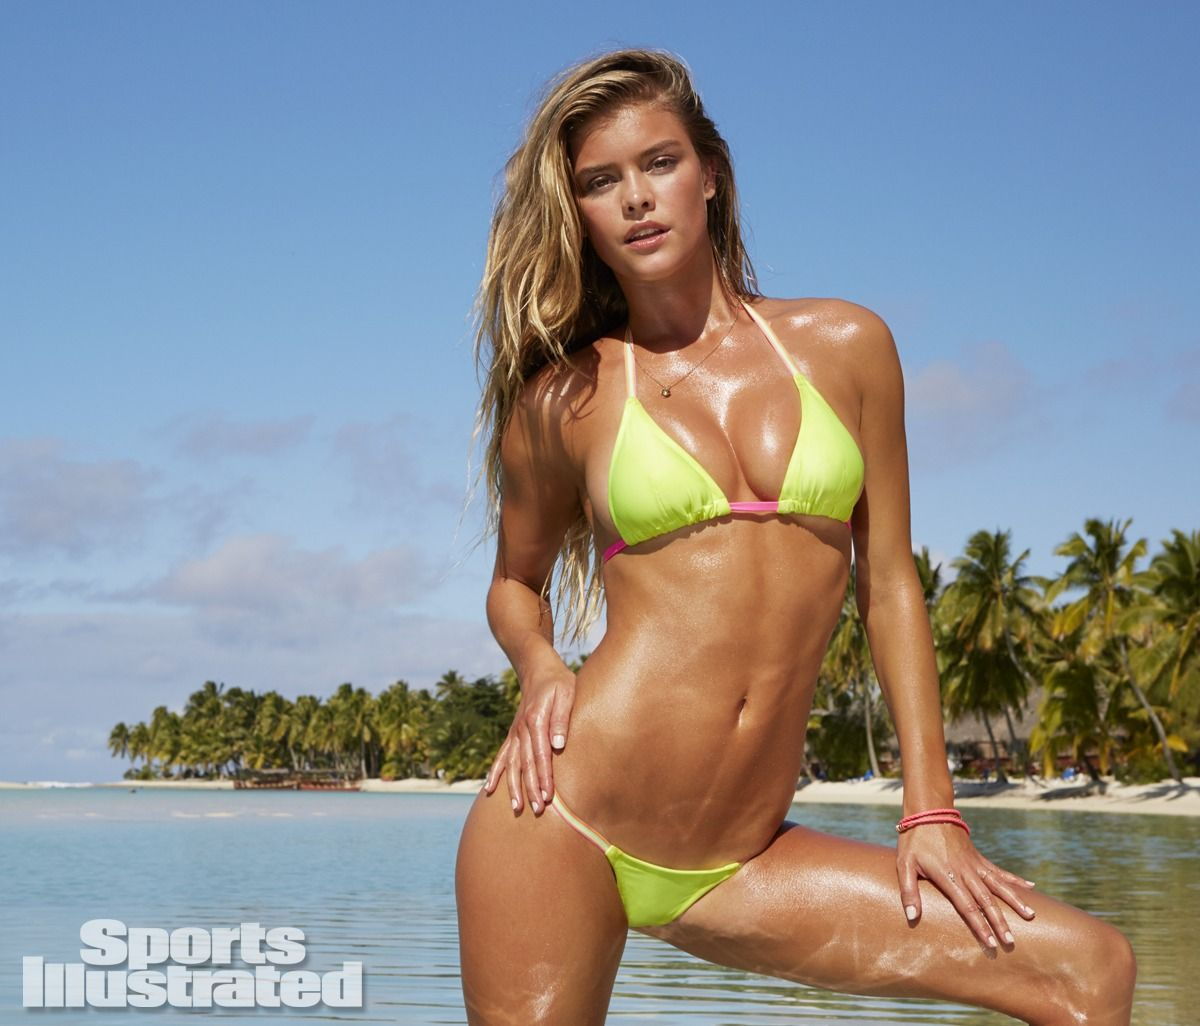 Camille Kostek Si Blue: Sports Illustrated Swimsuit